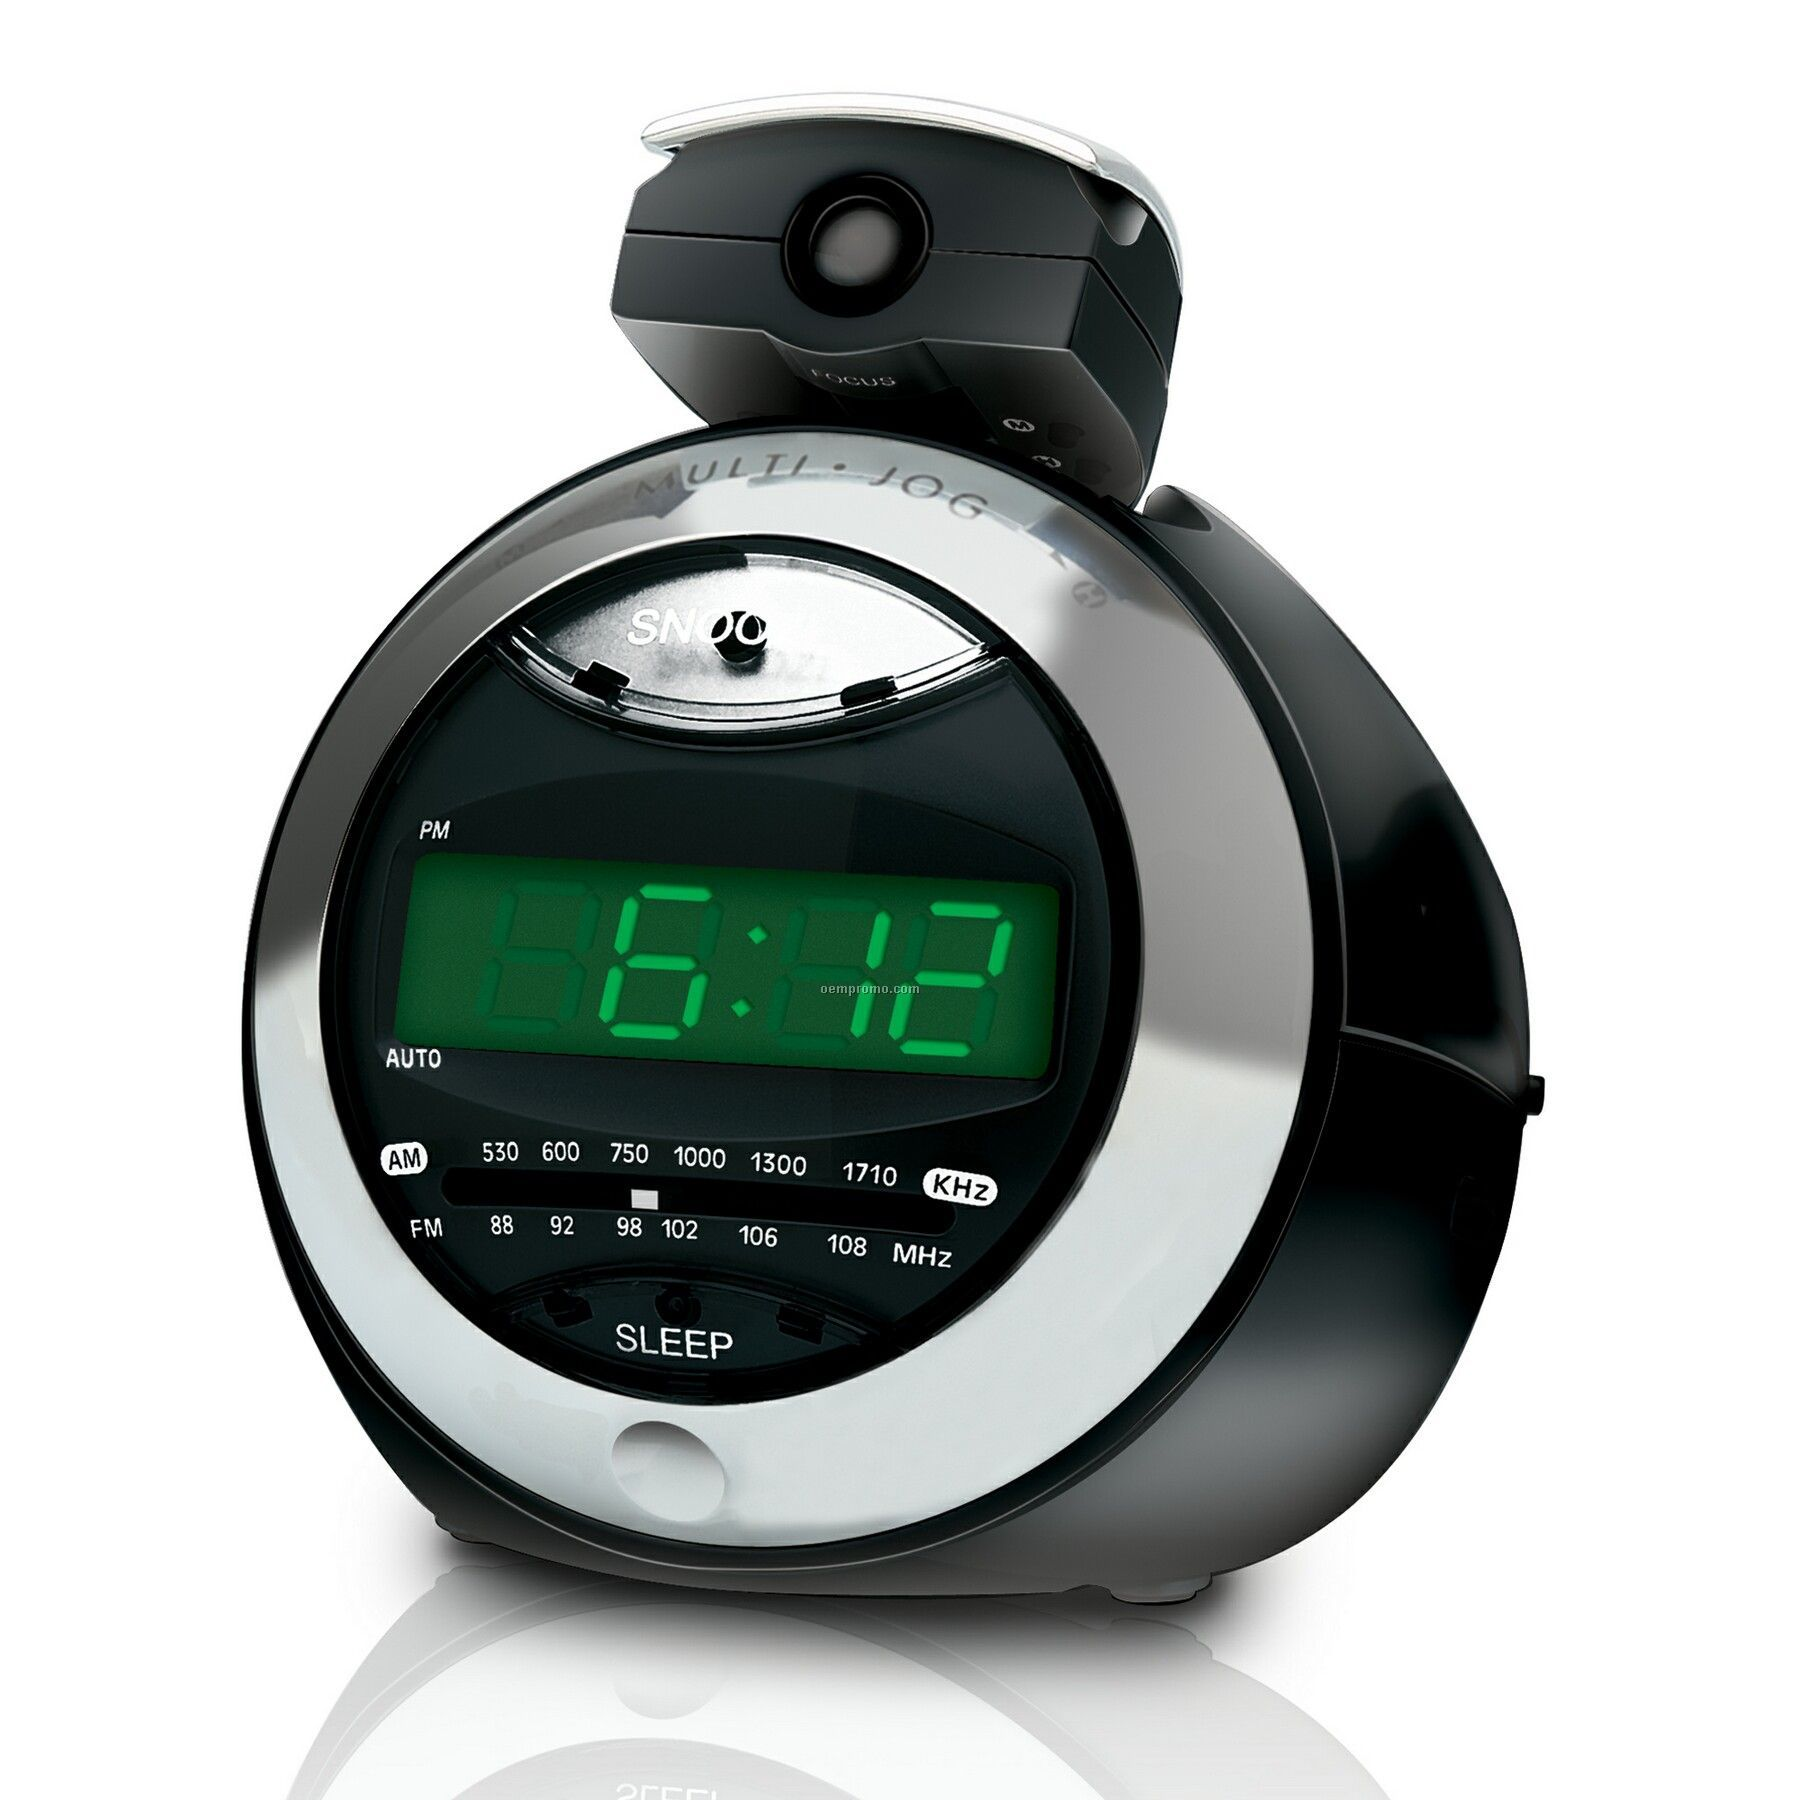 alarm clock radio digital tuner applinces funda. Black Bedroom Furniture Sets. Home Design Ideas